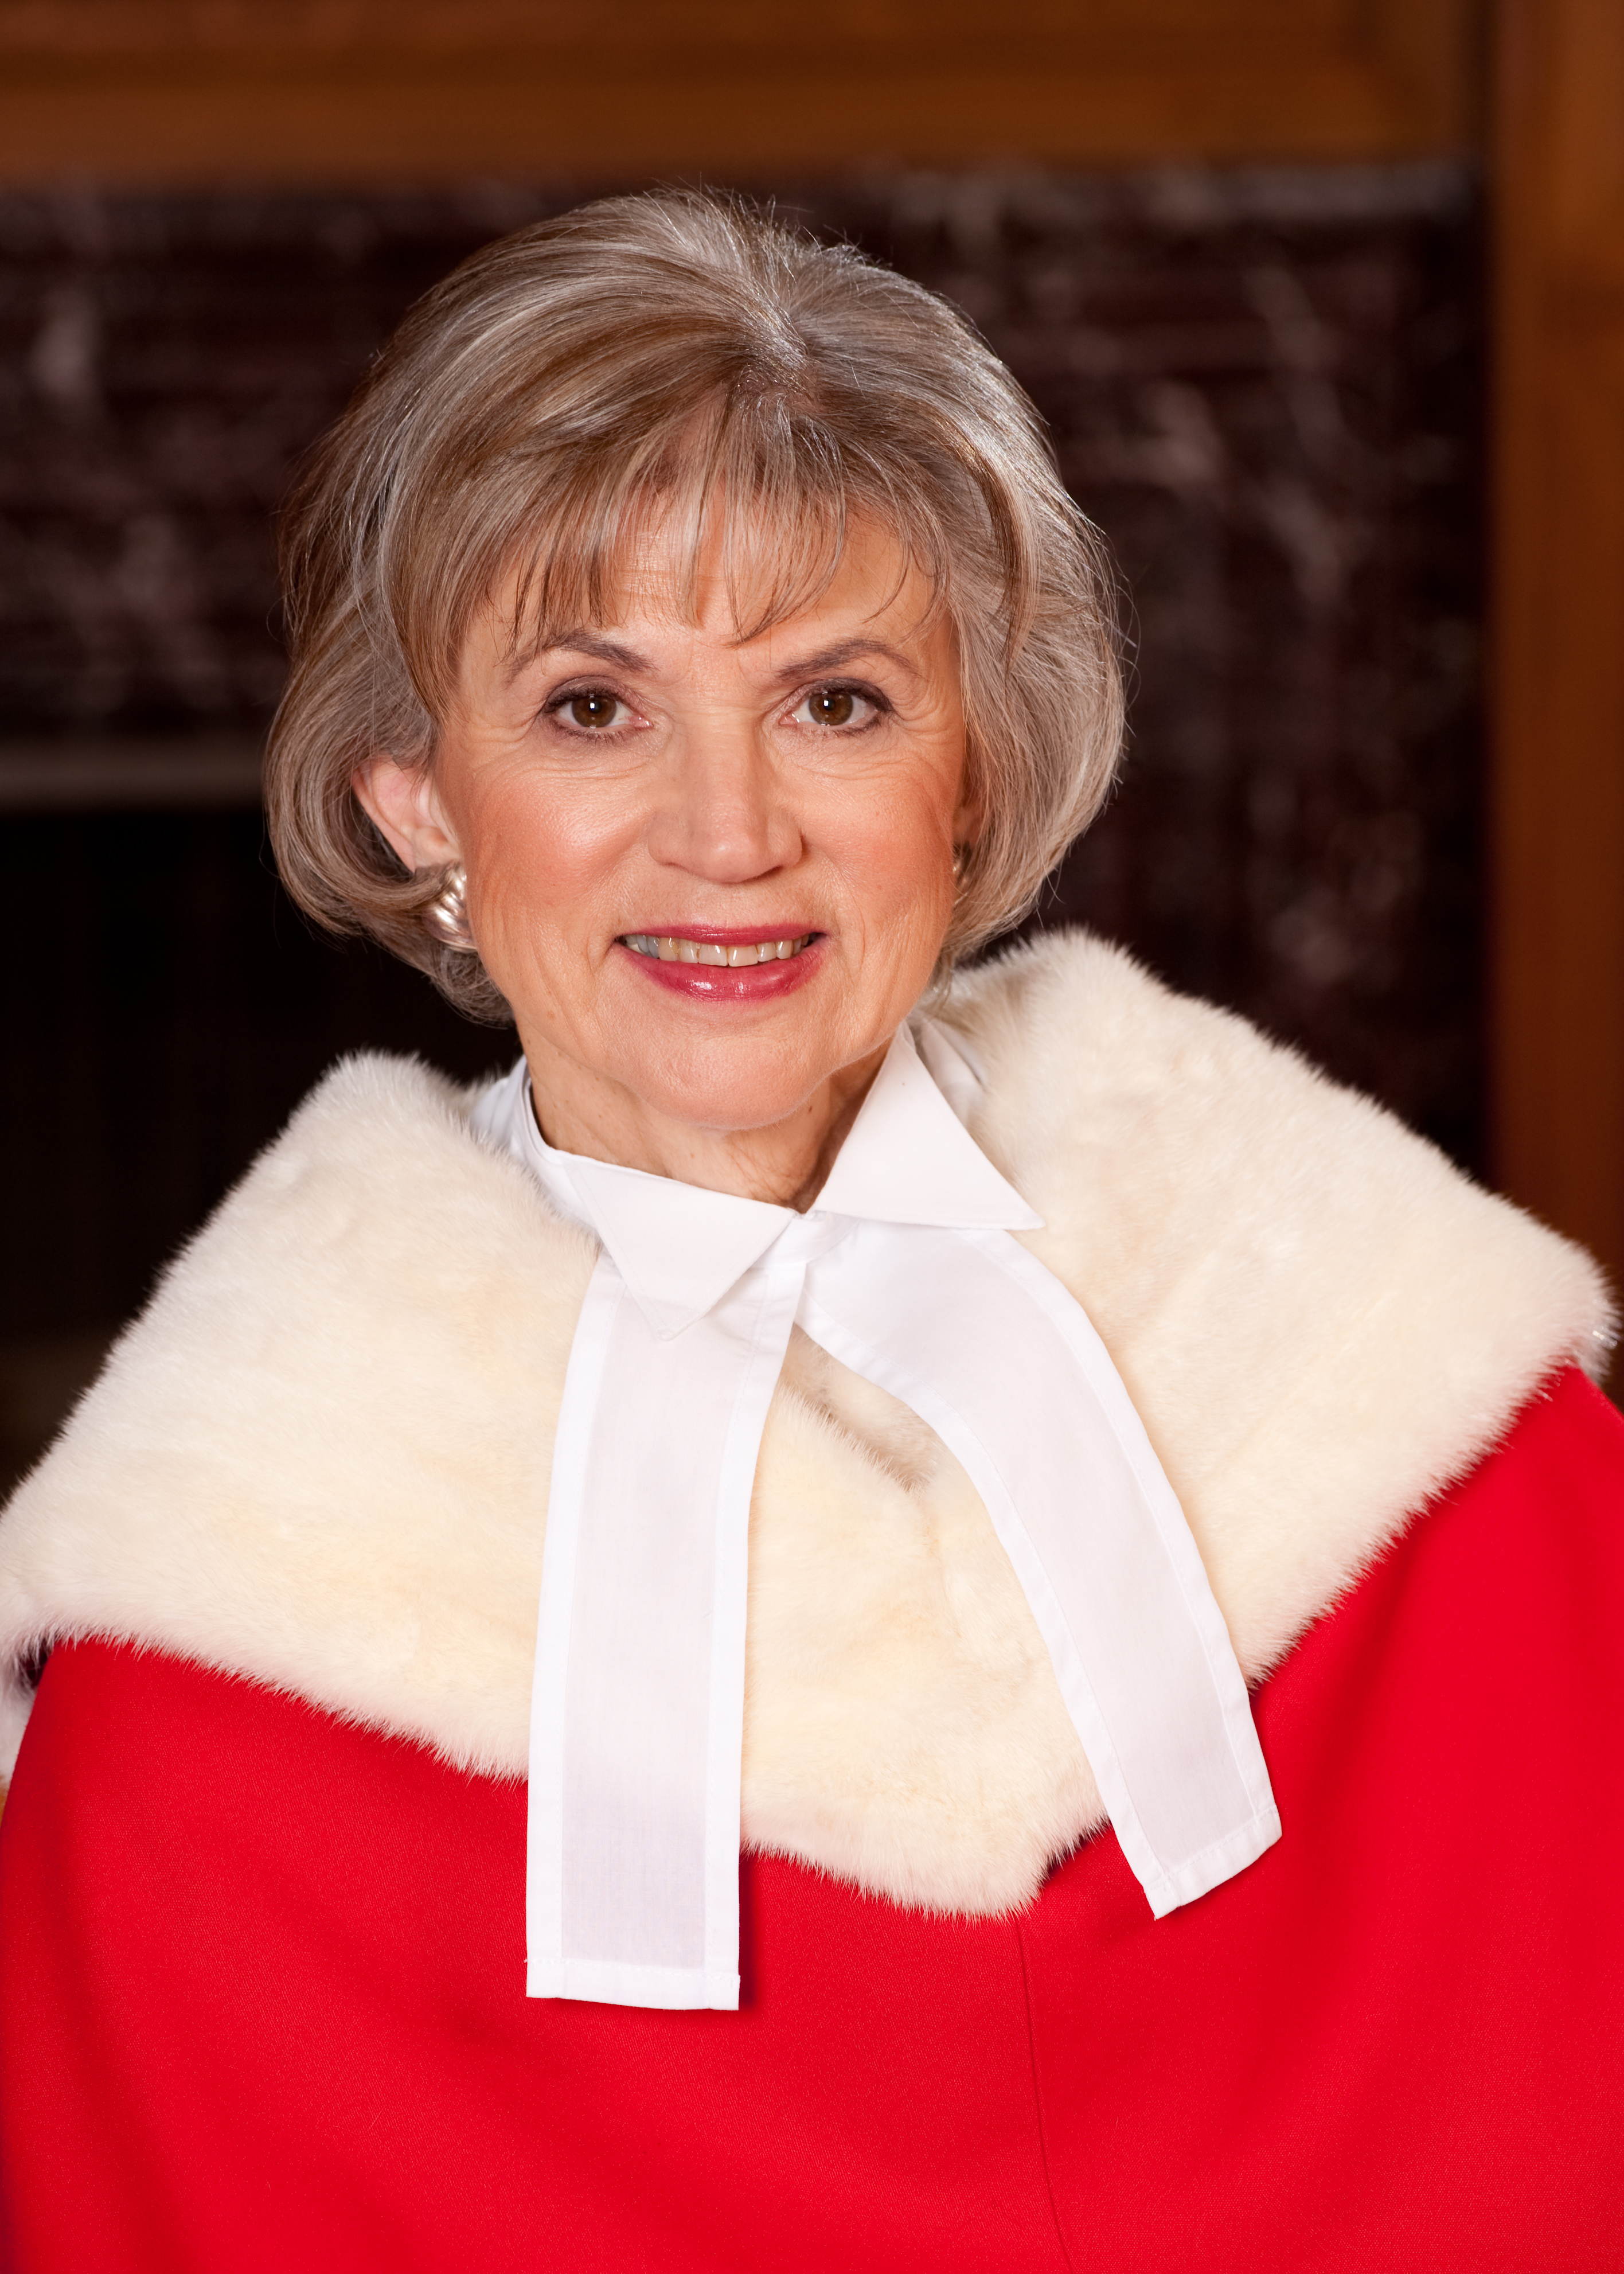 Photograph of The Right Honourable Beverley McLachlin P.C., B.A., M.A., LLB.